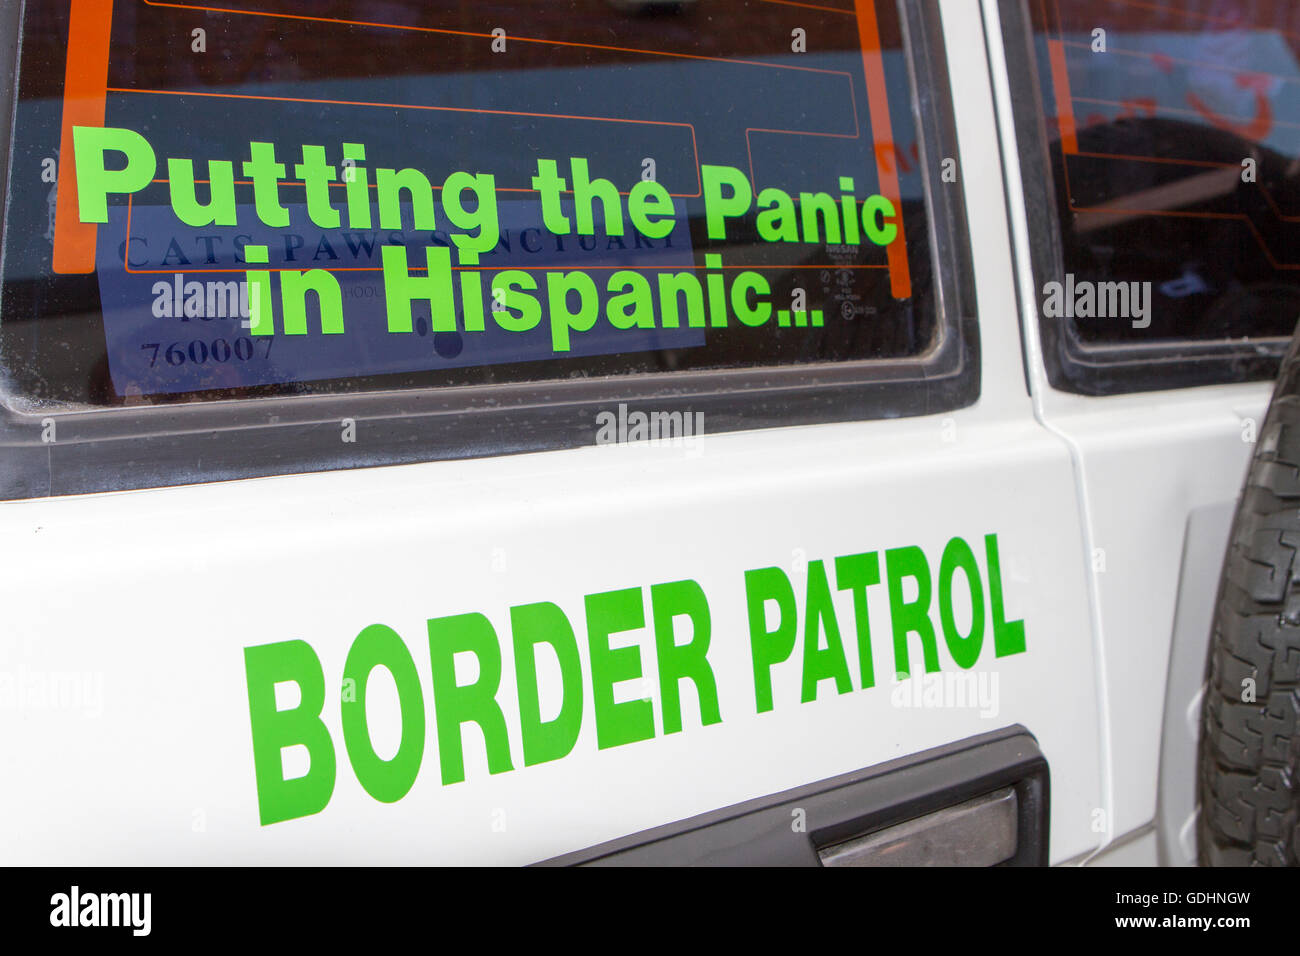 Funny Writing On U.S. Border Patrol Imitation Vehicle At Fleetwood Tram  Day, Lancashire, UK